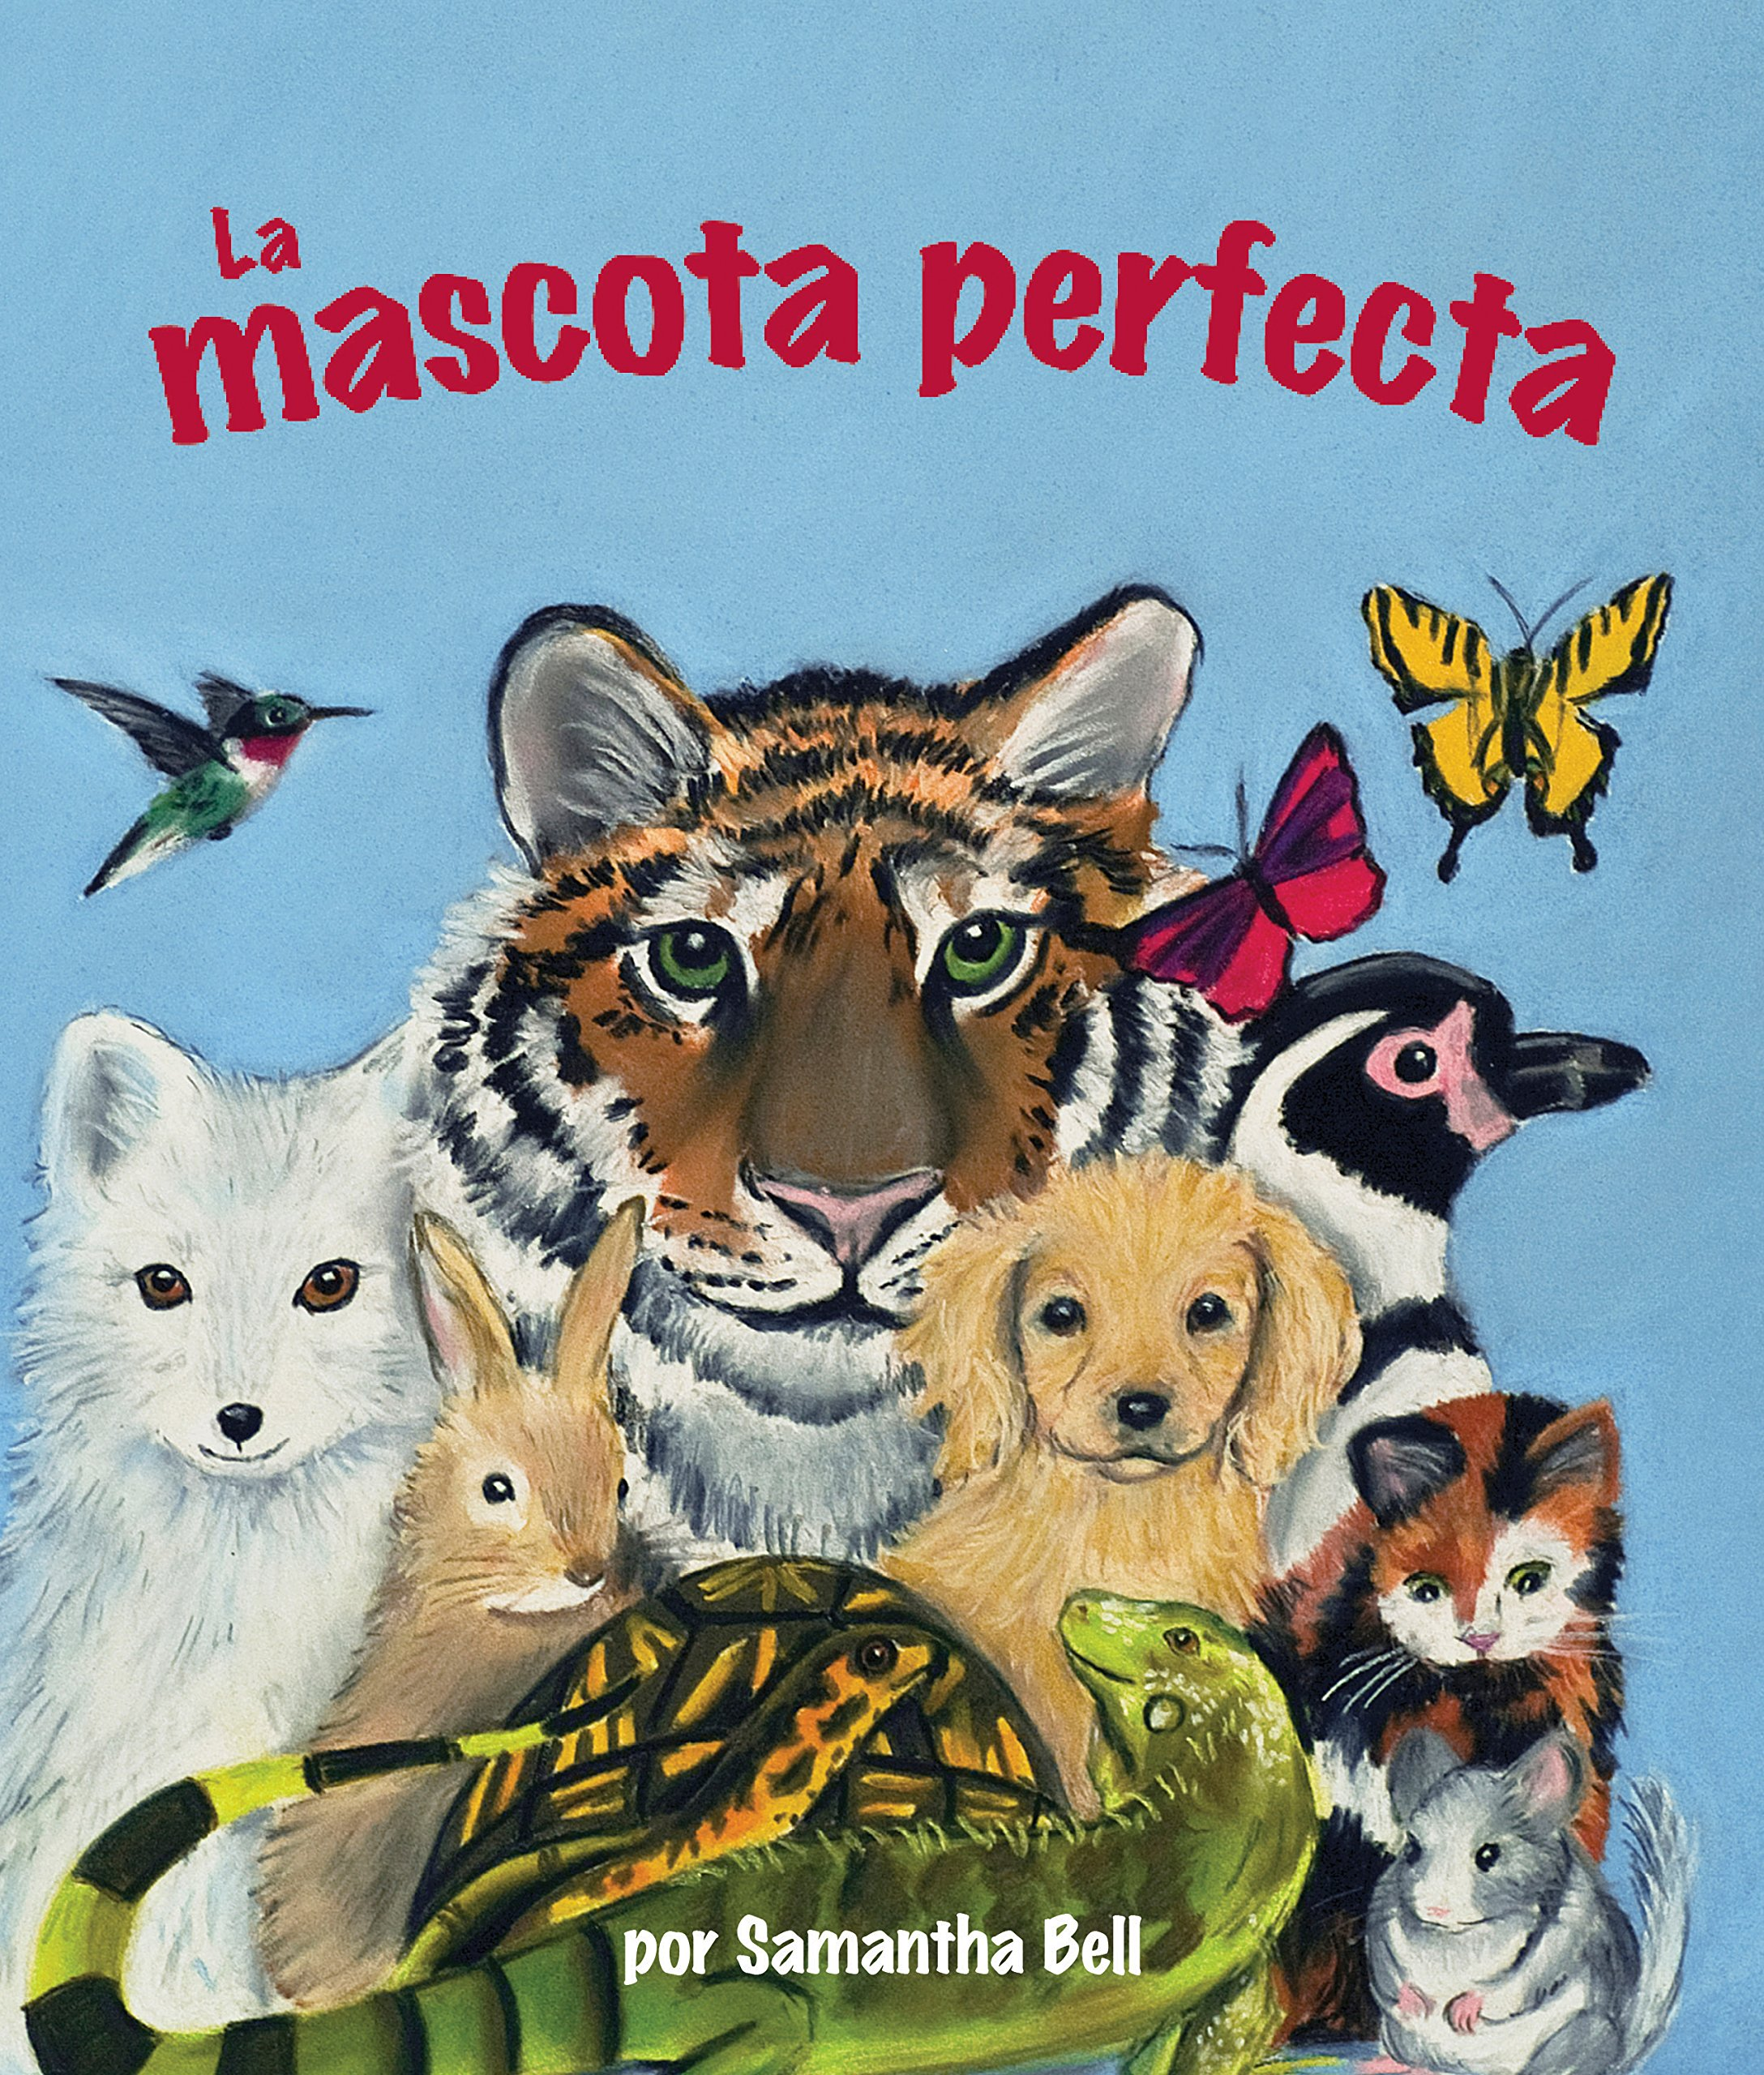 La mascota perfecta [Perfect Pet, The] (Spanish Edition): Samantha Bell:  9781607187011: Amazon.com: Books